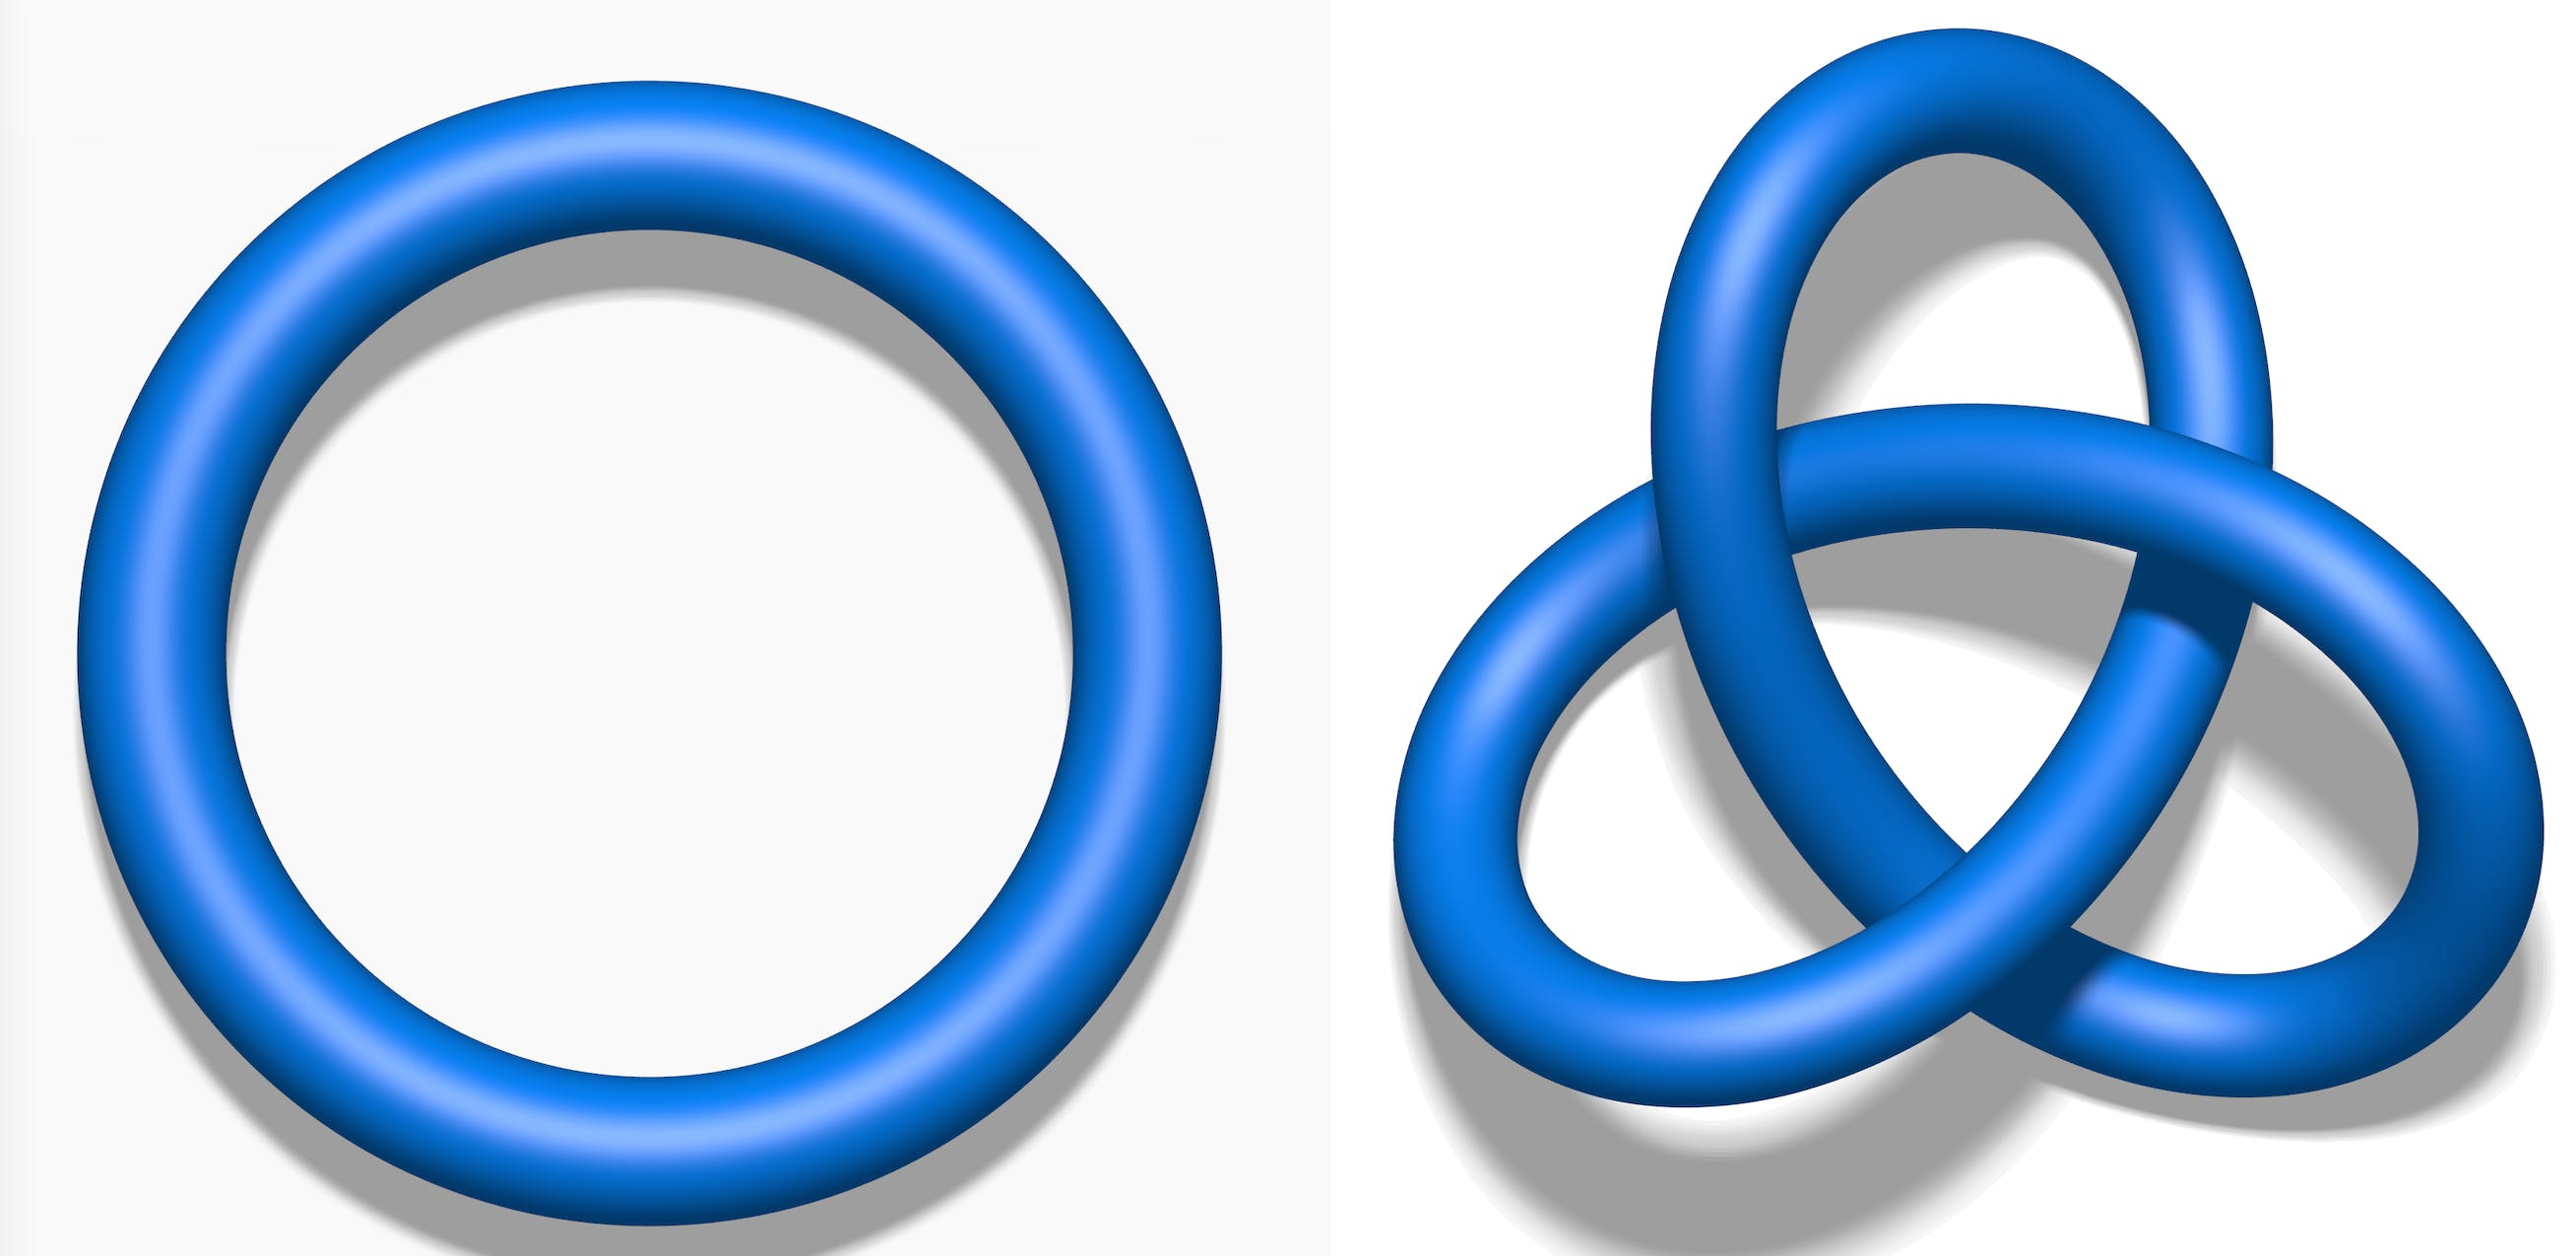 An unknot, a circle with no crossovers, on the left, compared with a simple trefoil knot, with three crossovers